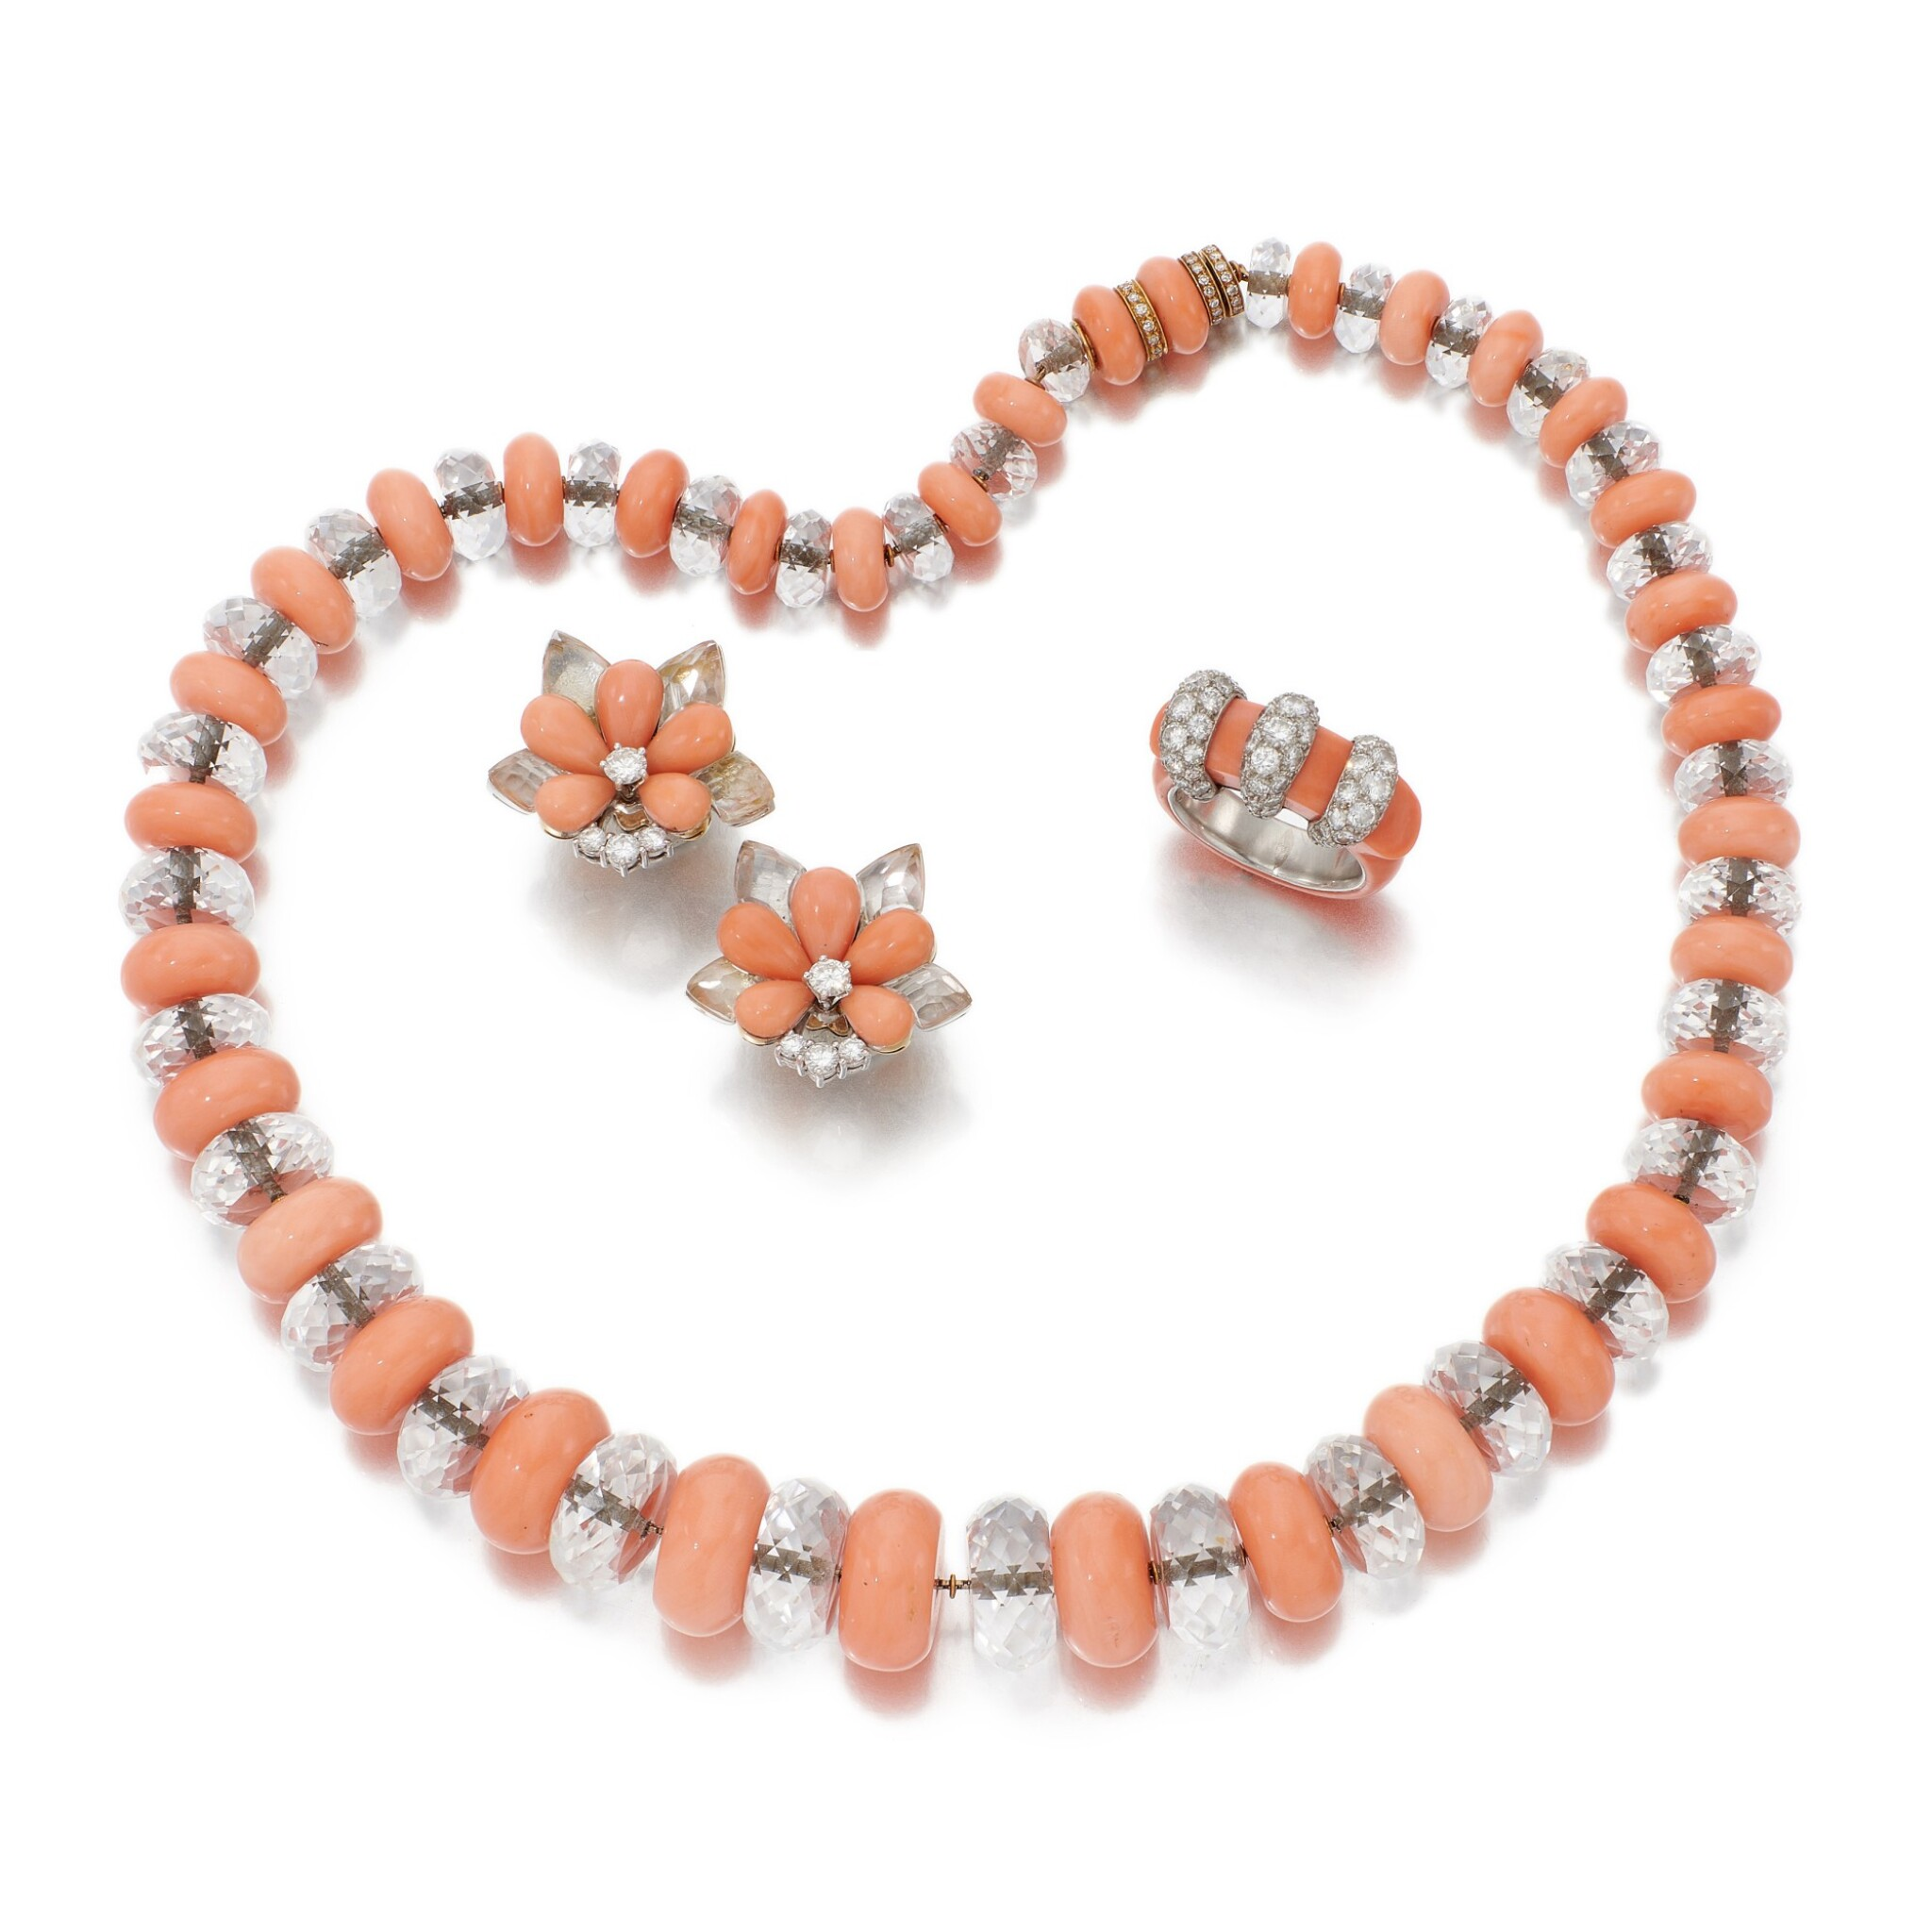 View full screen - View 1 of Lot 70. CORAL AND DIAMOND RING, SIGNED CARTIER, CORAL AND ROCK CRYSTAL NECKLACE AND PAIR OF EARRINGS  (ANELLO IN CORALLO E DIAMANTI, FIRMATO CARTIER, COLLANA E PAIO DI ORECCHINI IN CORALLO, CRISTALLO DI ROCCA E DIAMANTI).